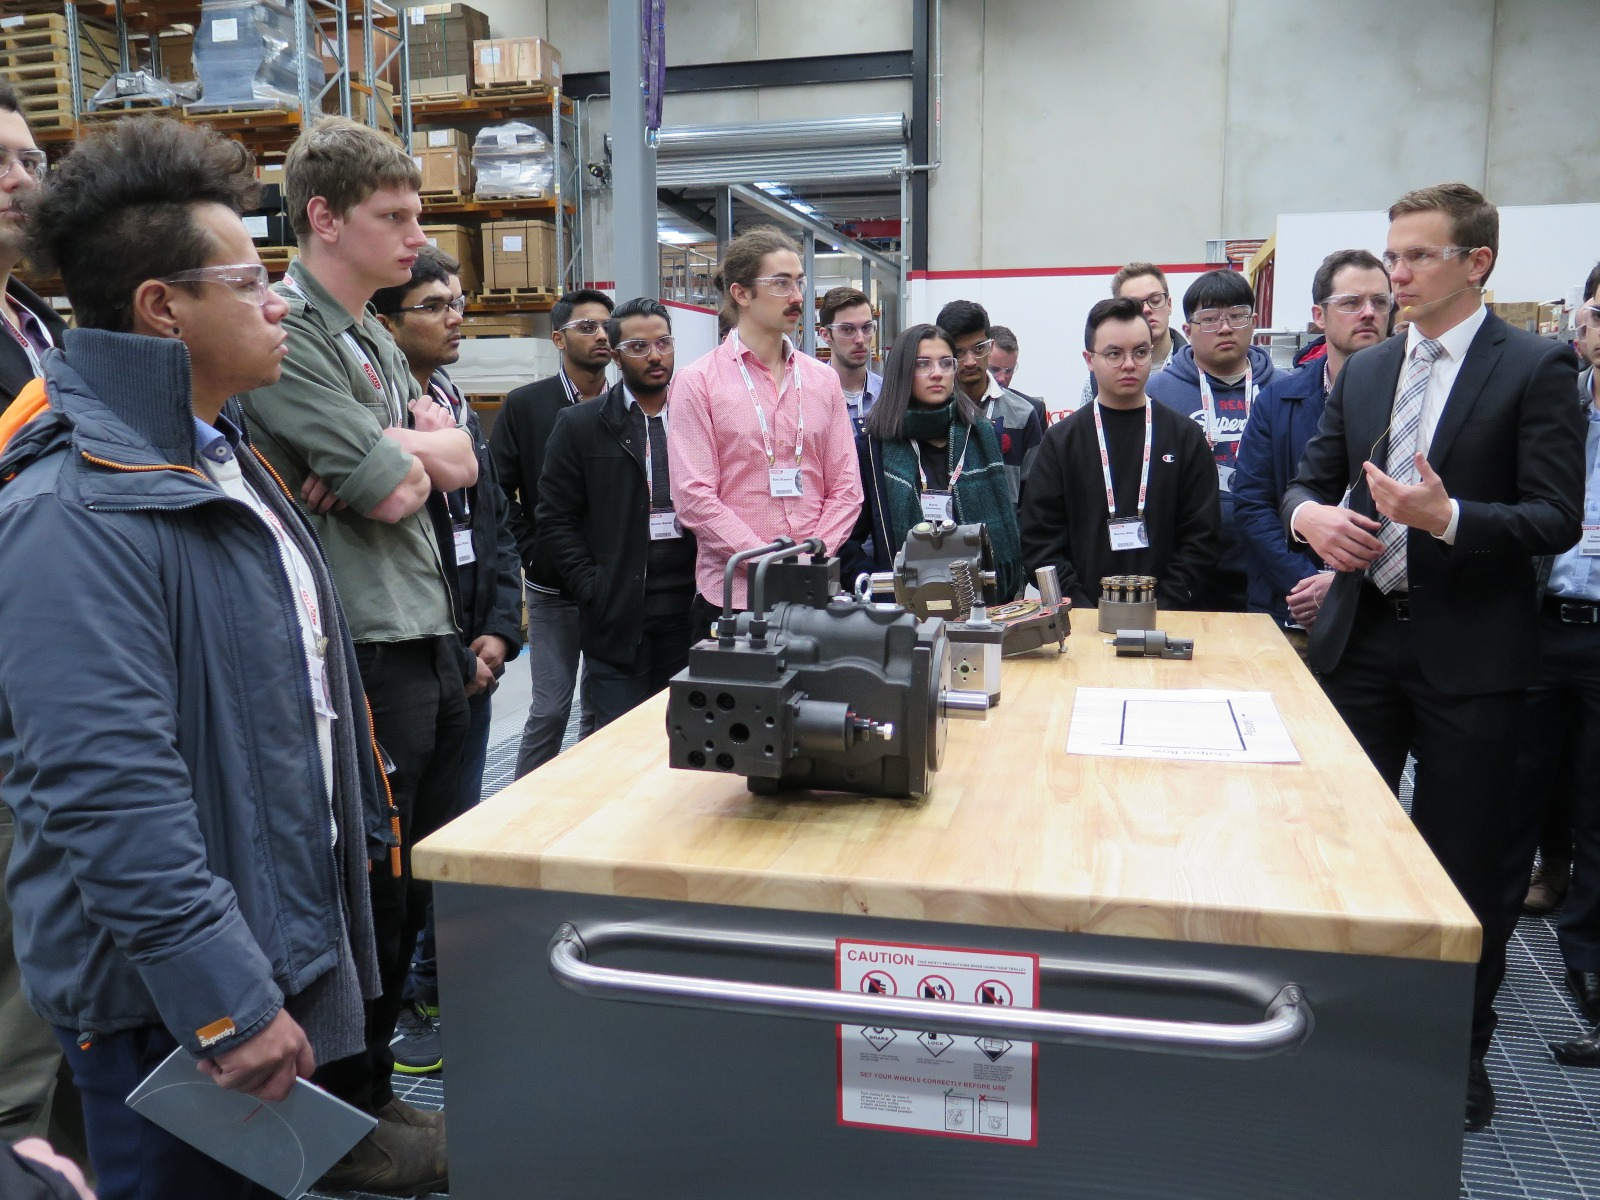 HYDAC Facility Tour & Innovation Day